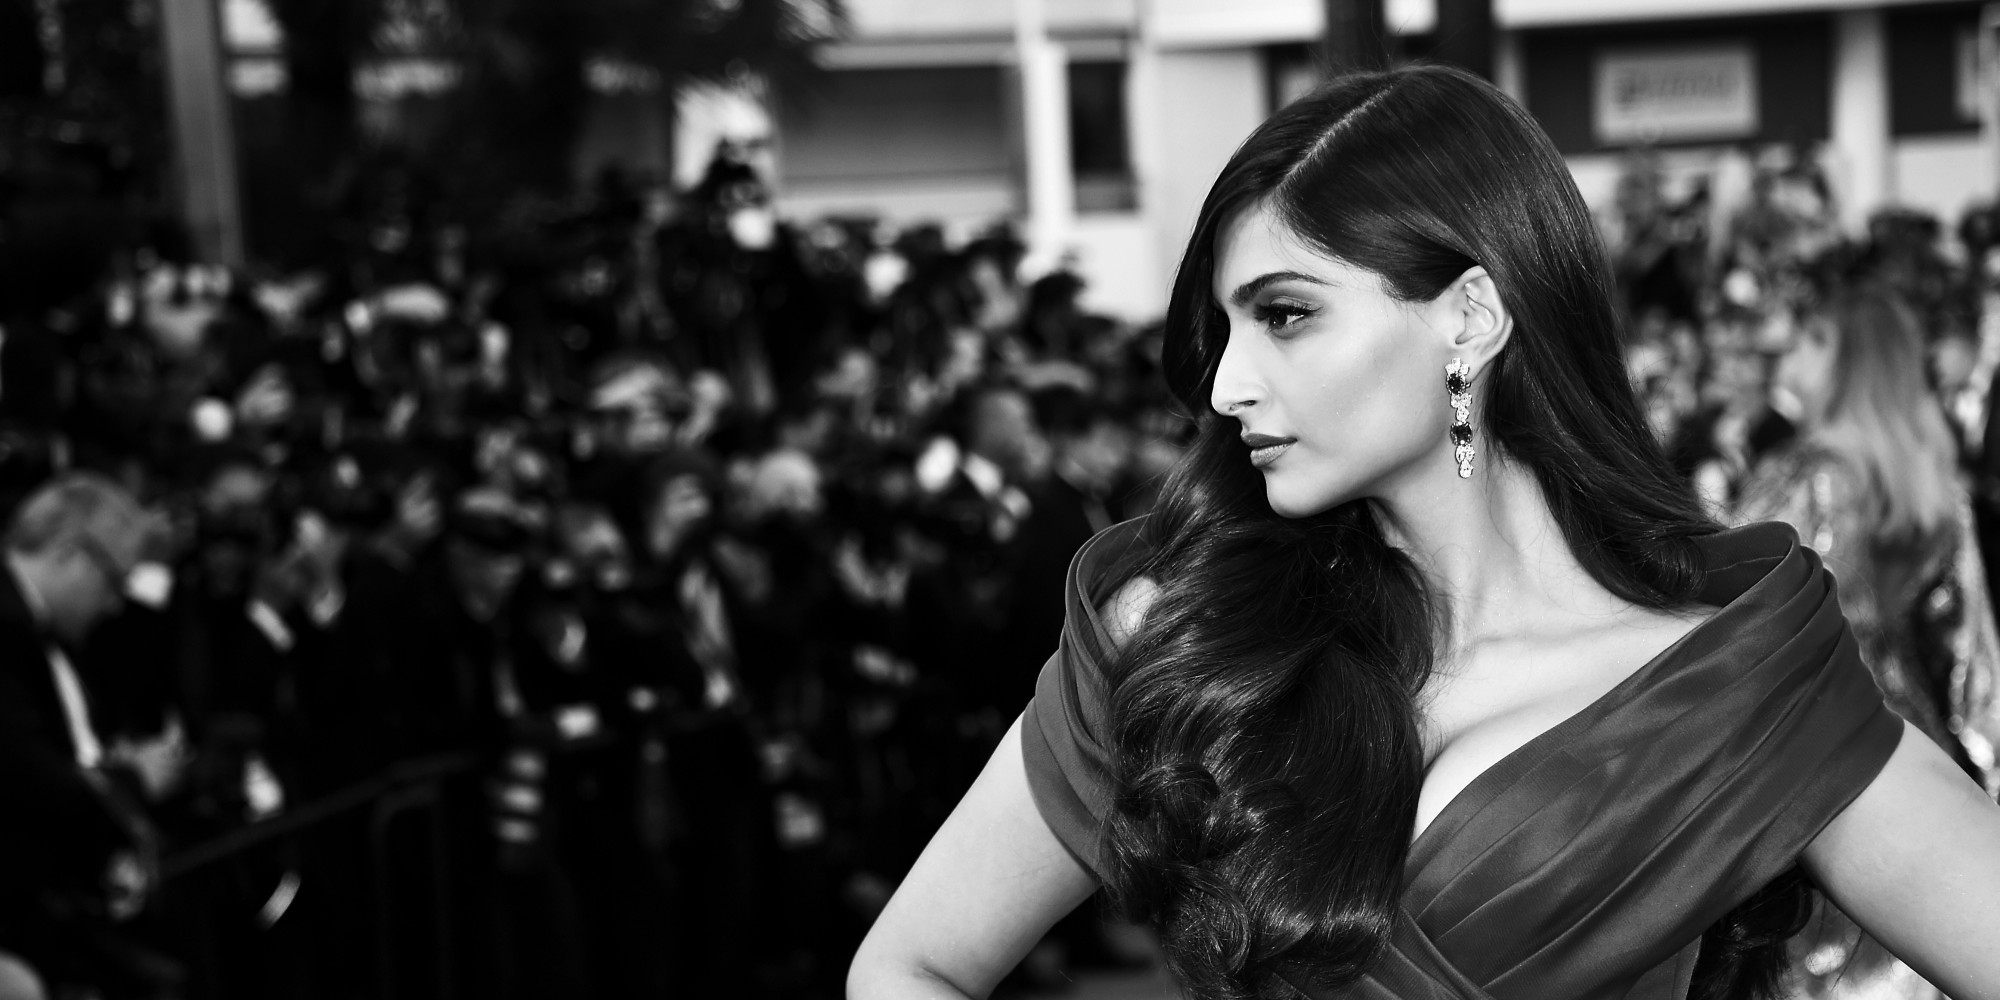 Bollywood Actress Sonam Kapoor On Getting Ready For Cannes